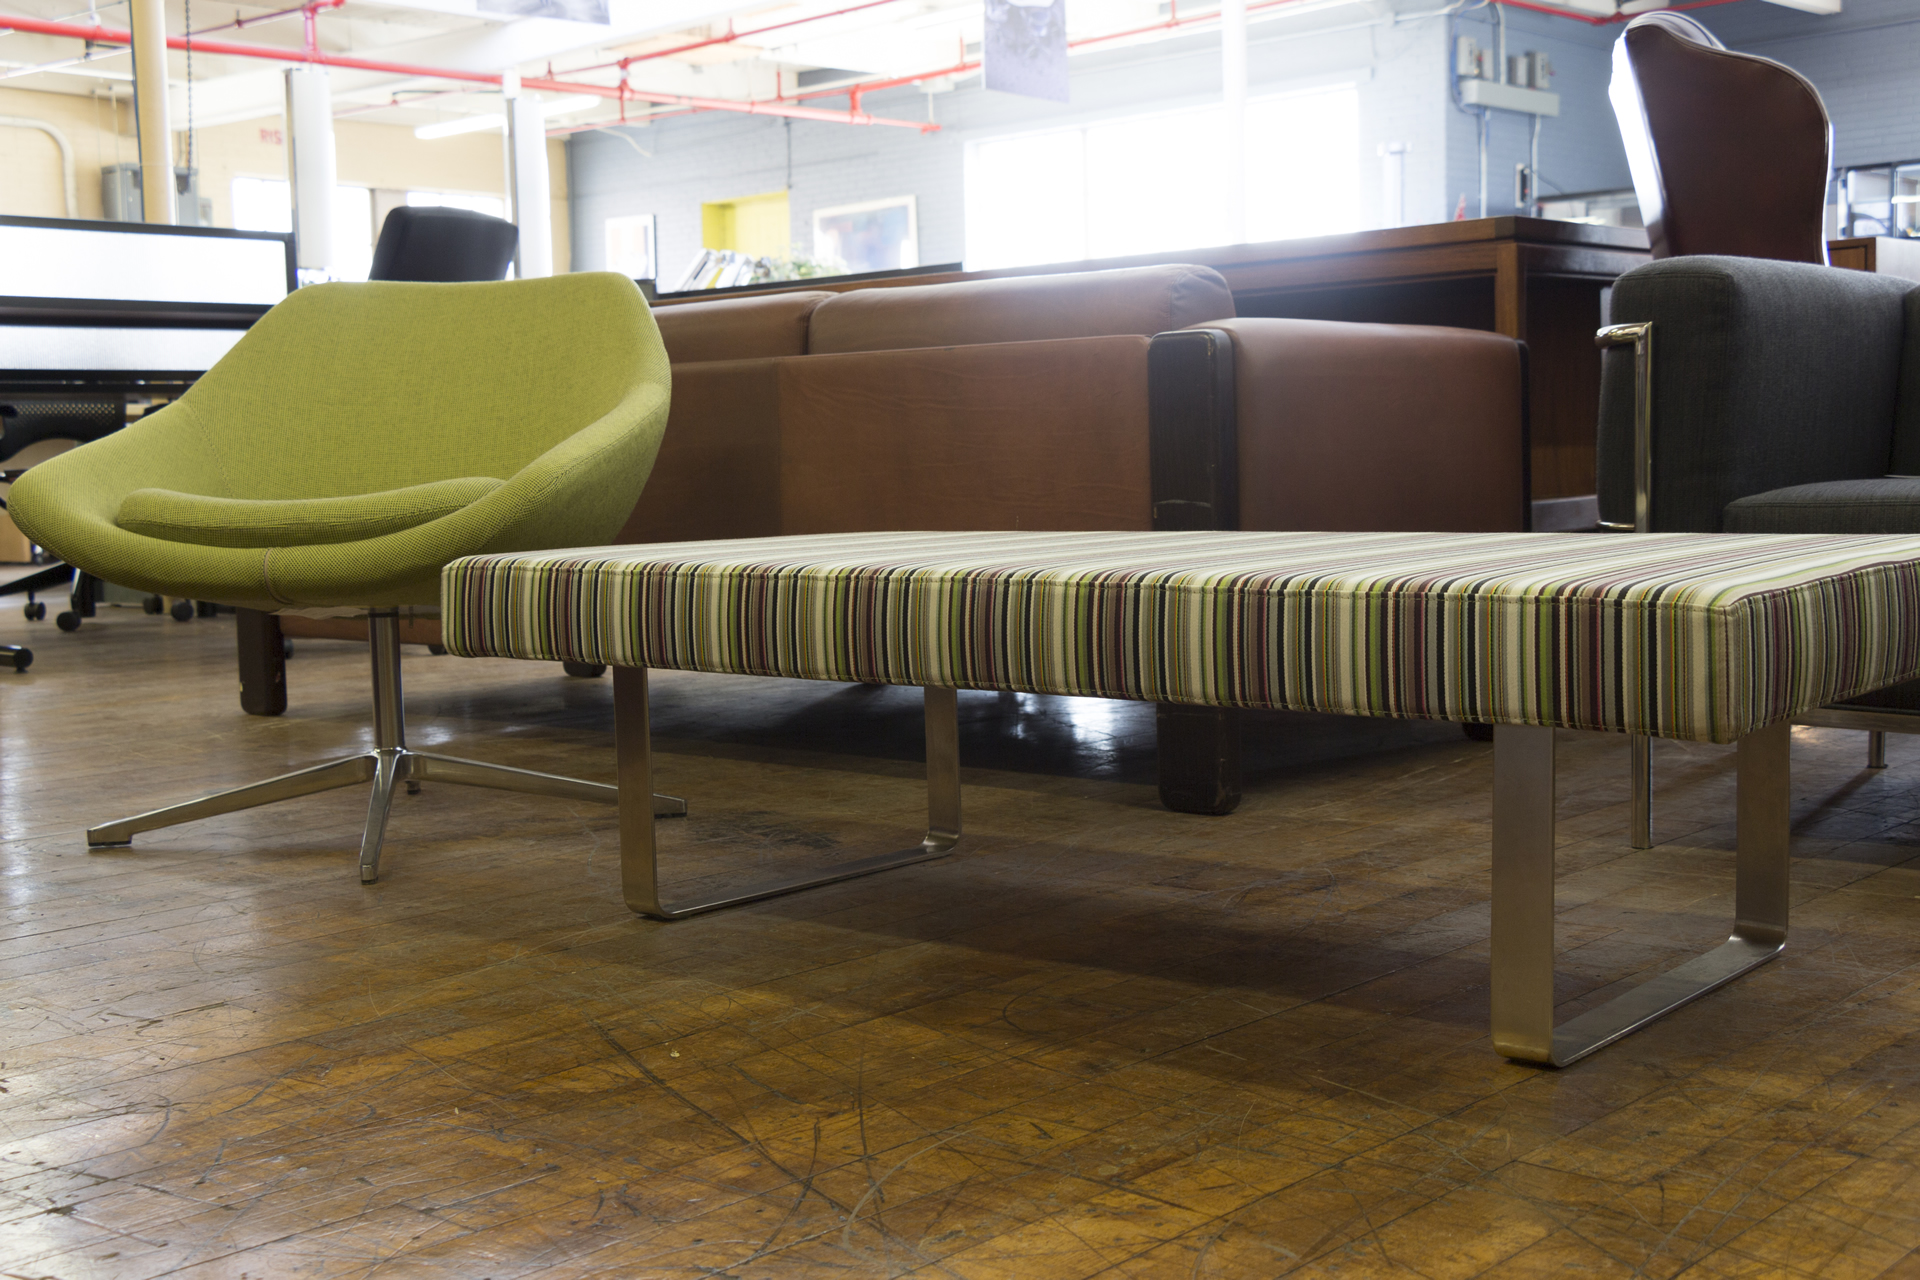 peartreeofficefurniture_peartreeofficefurniture_mg_3453.jpg